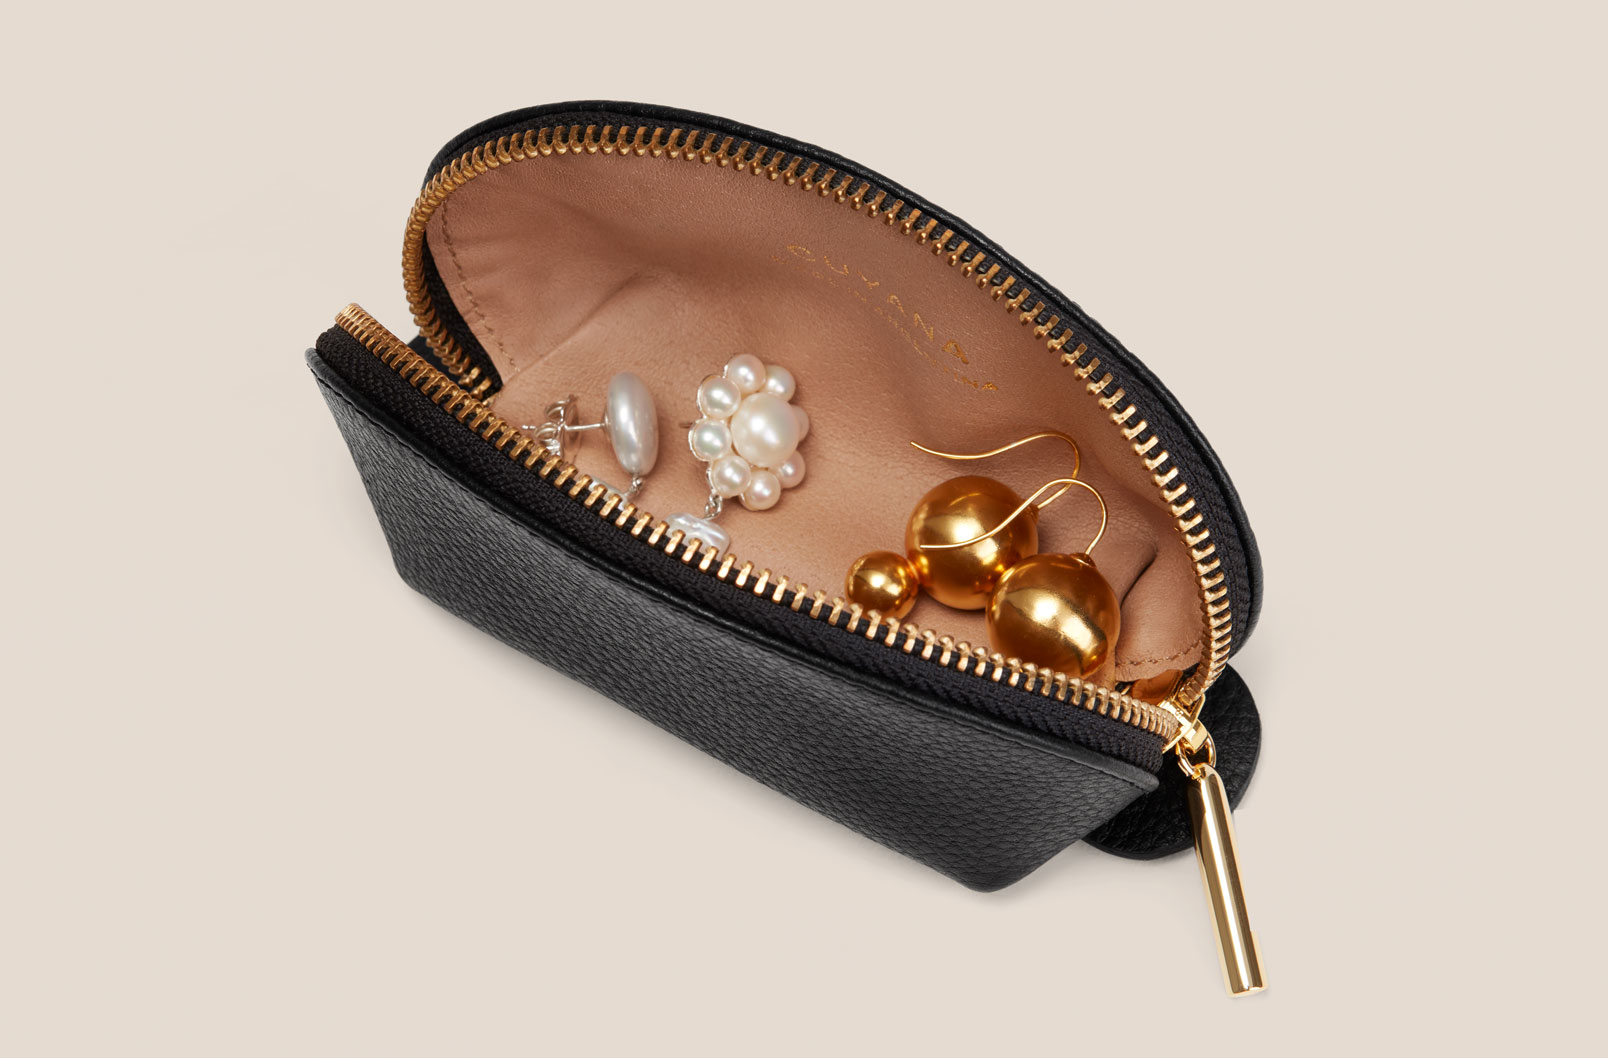 Cuyana Mini Travel Case in Black with earrings inside